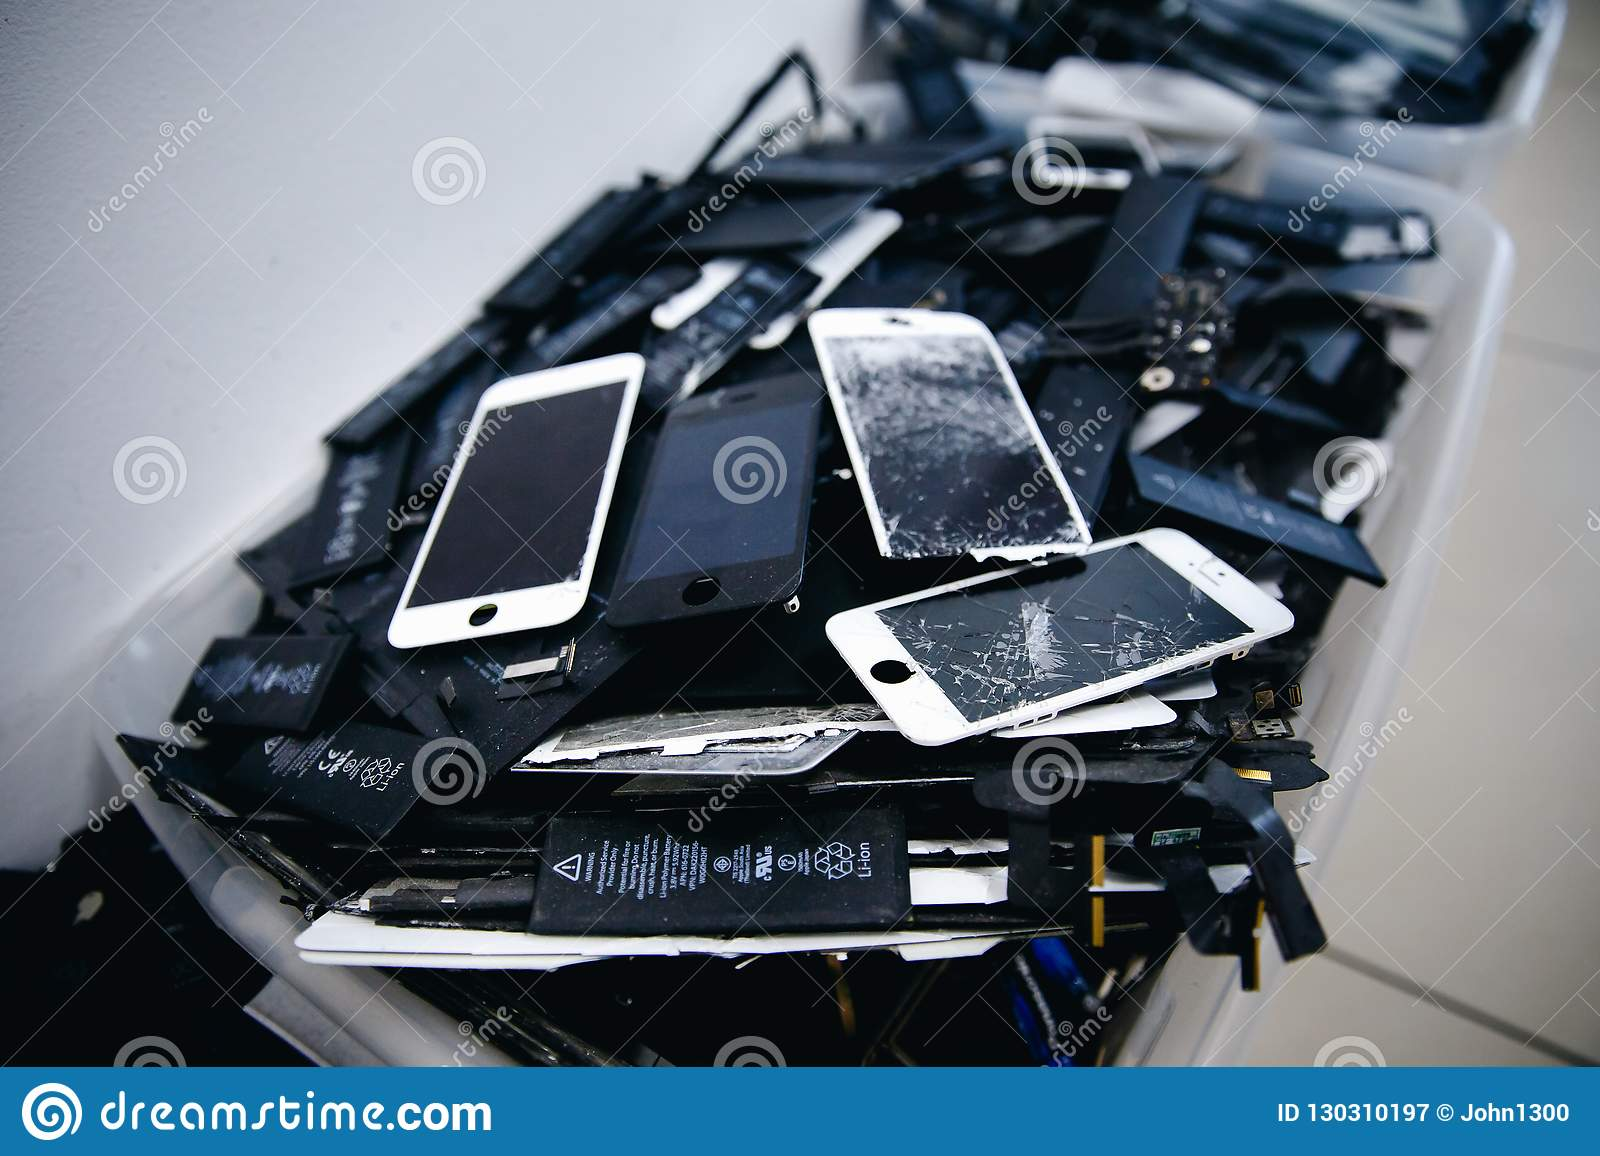 Mobile phone batteries, tablets, broken screens LCD iPhone